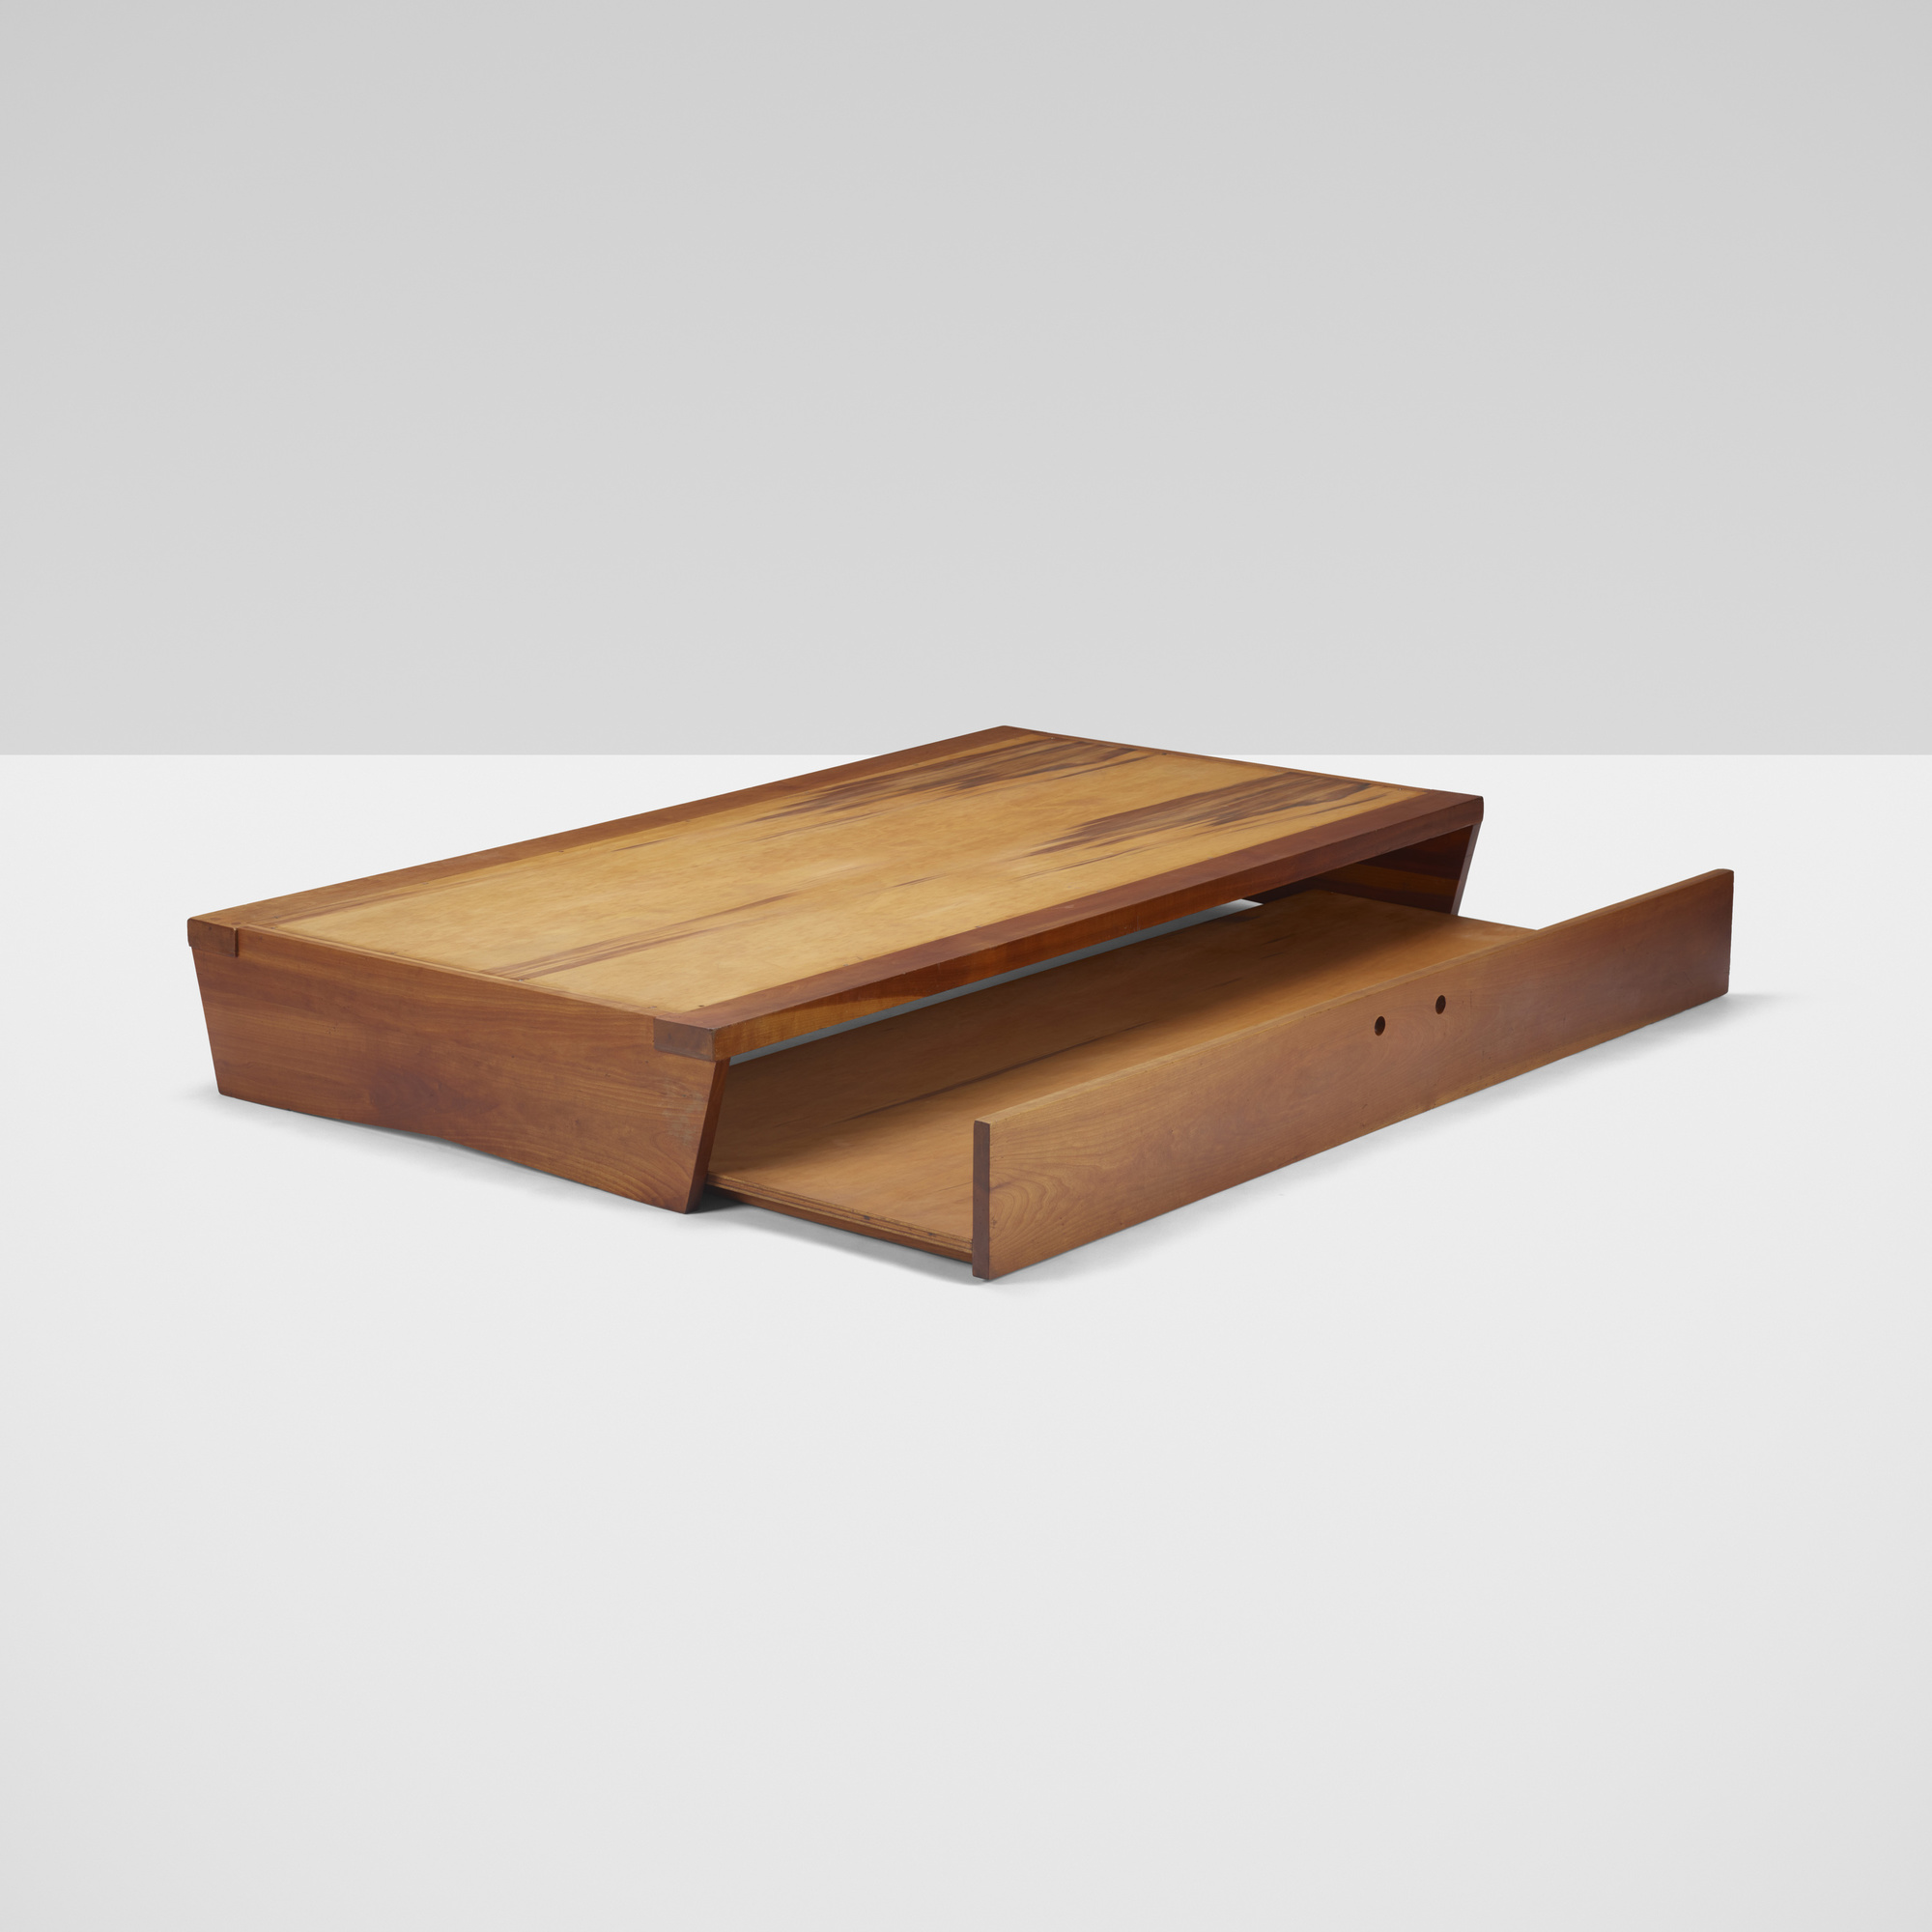 130: George Nakashima / trundle bed (1 of 2)